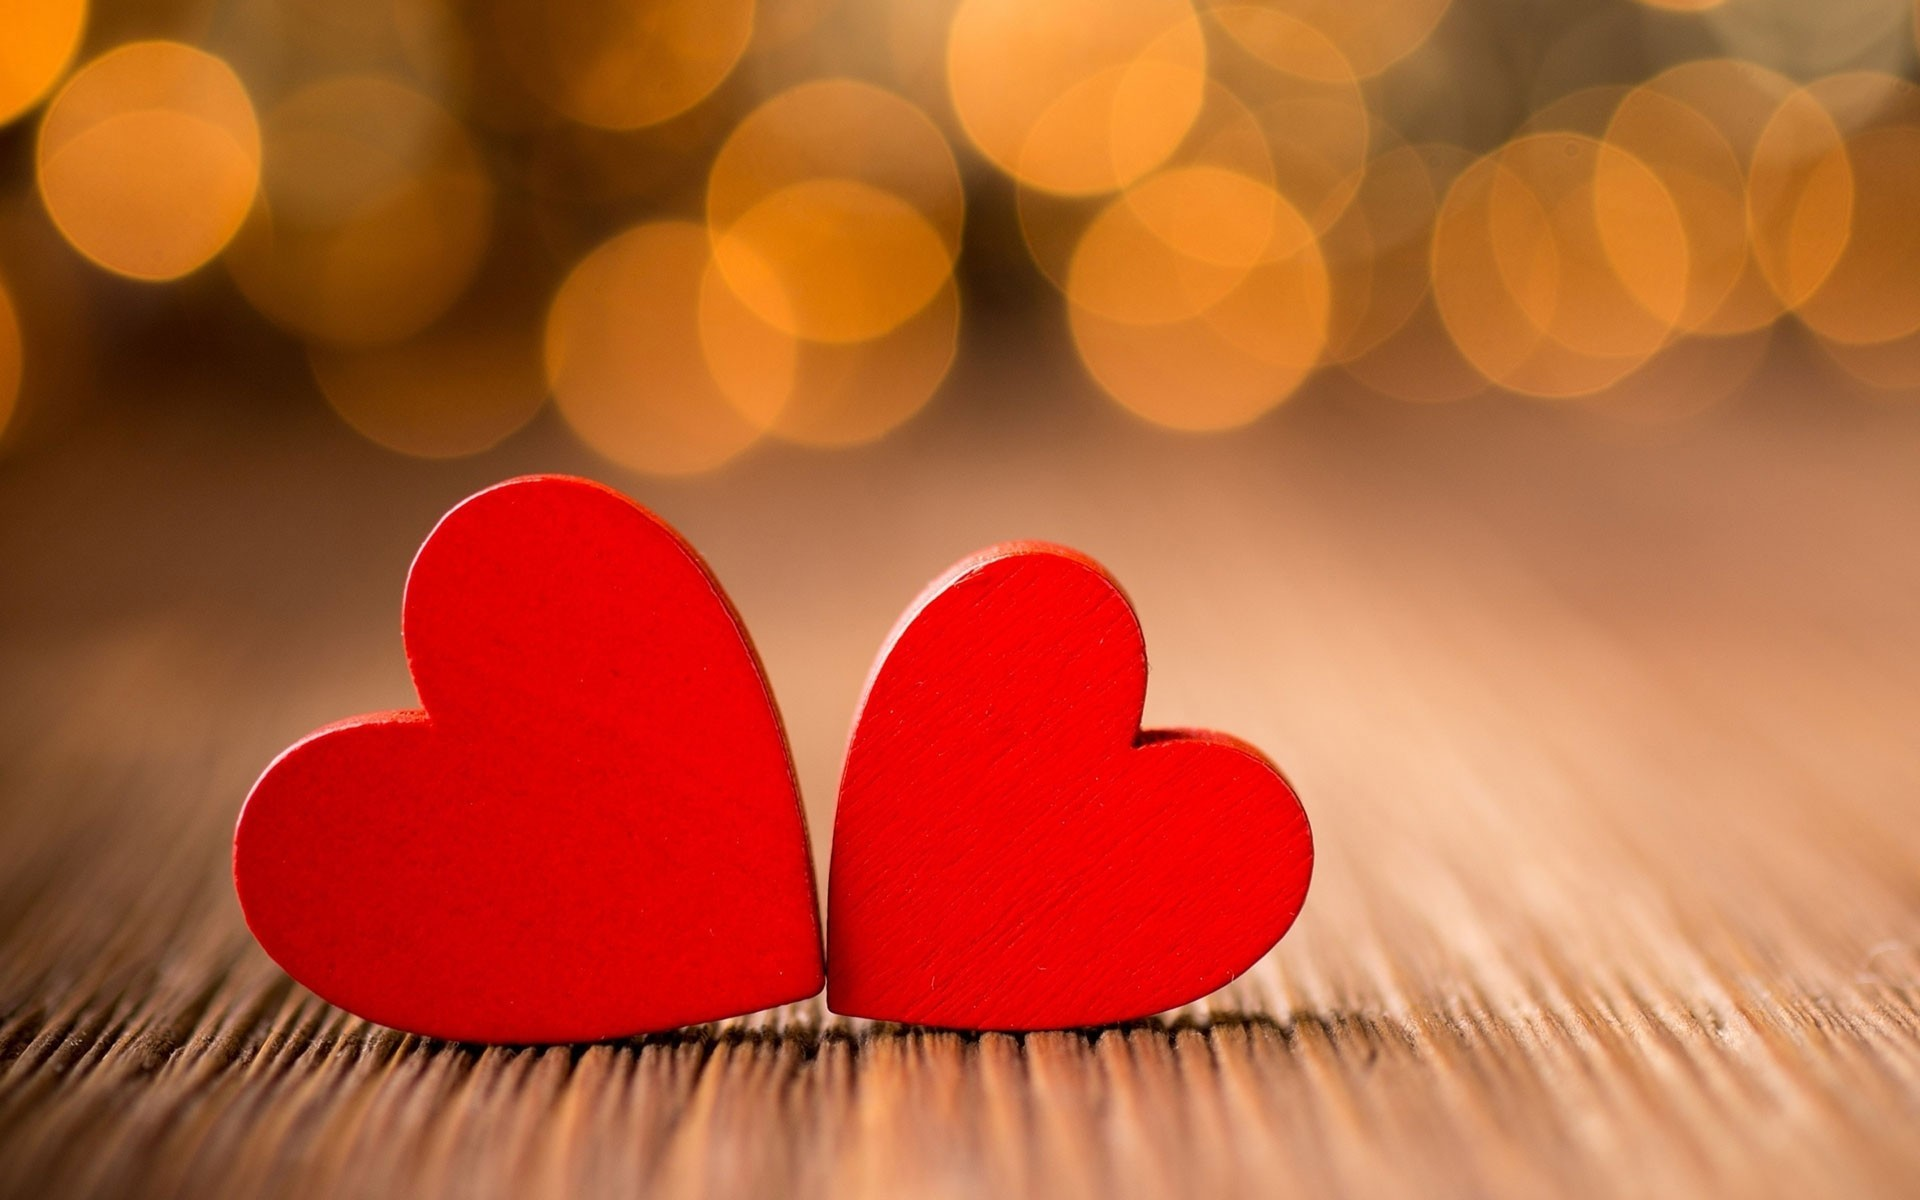 Res: 1920x1200,  New cute images of love hearts - Cute Love Heart Wallpaper Hd  Free Pink Heart